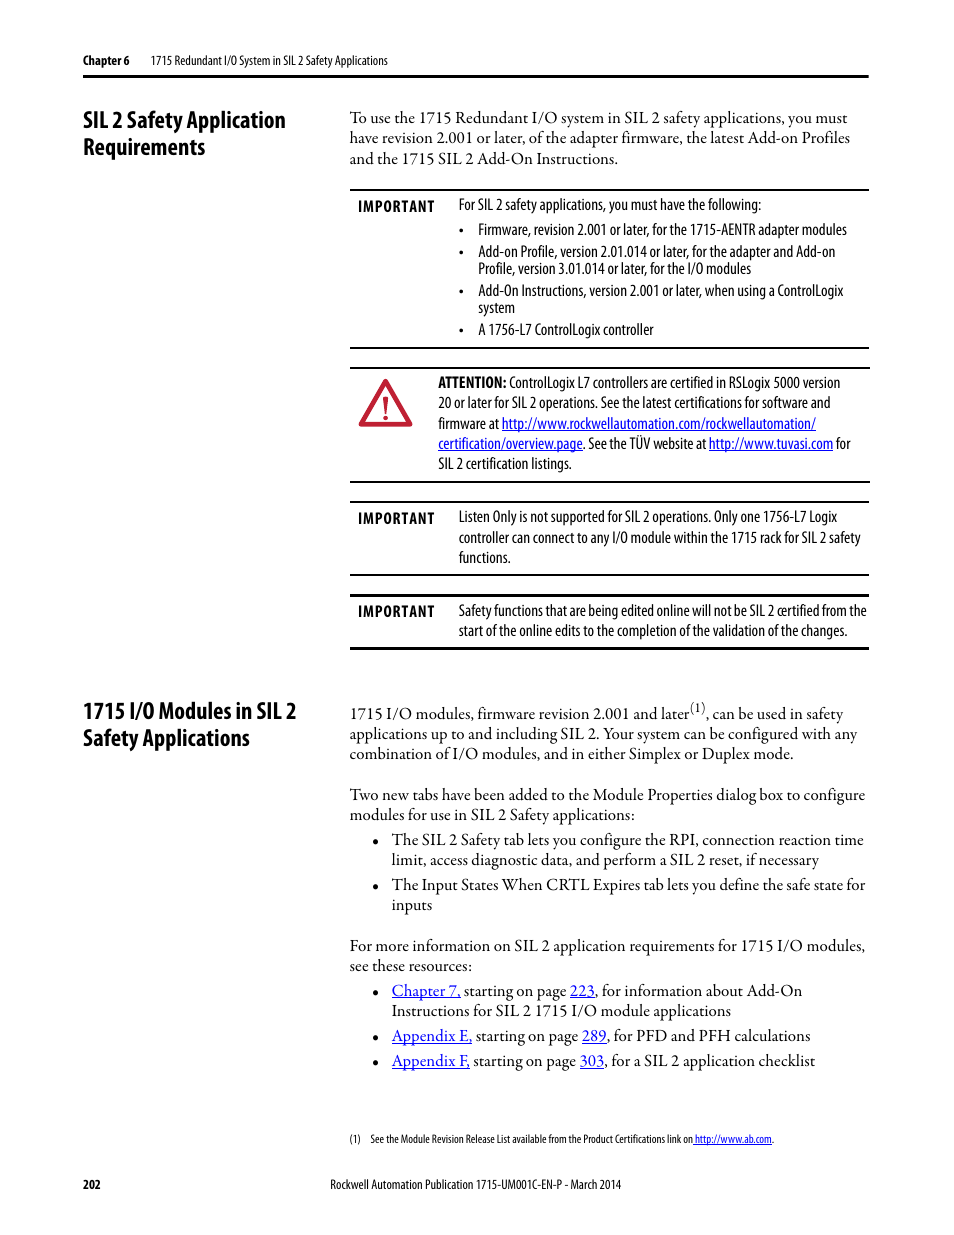 Sil 2 safety application requirements, 1715 i/o modules in ... Ab If Wiring Diagram on